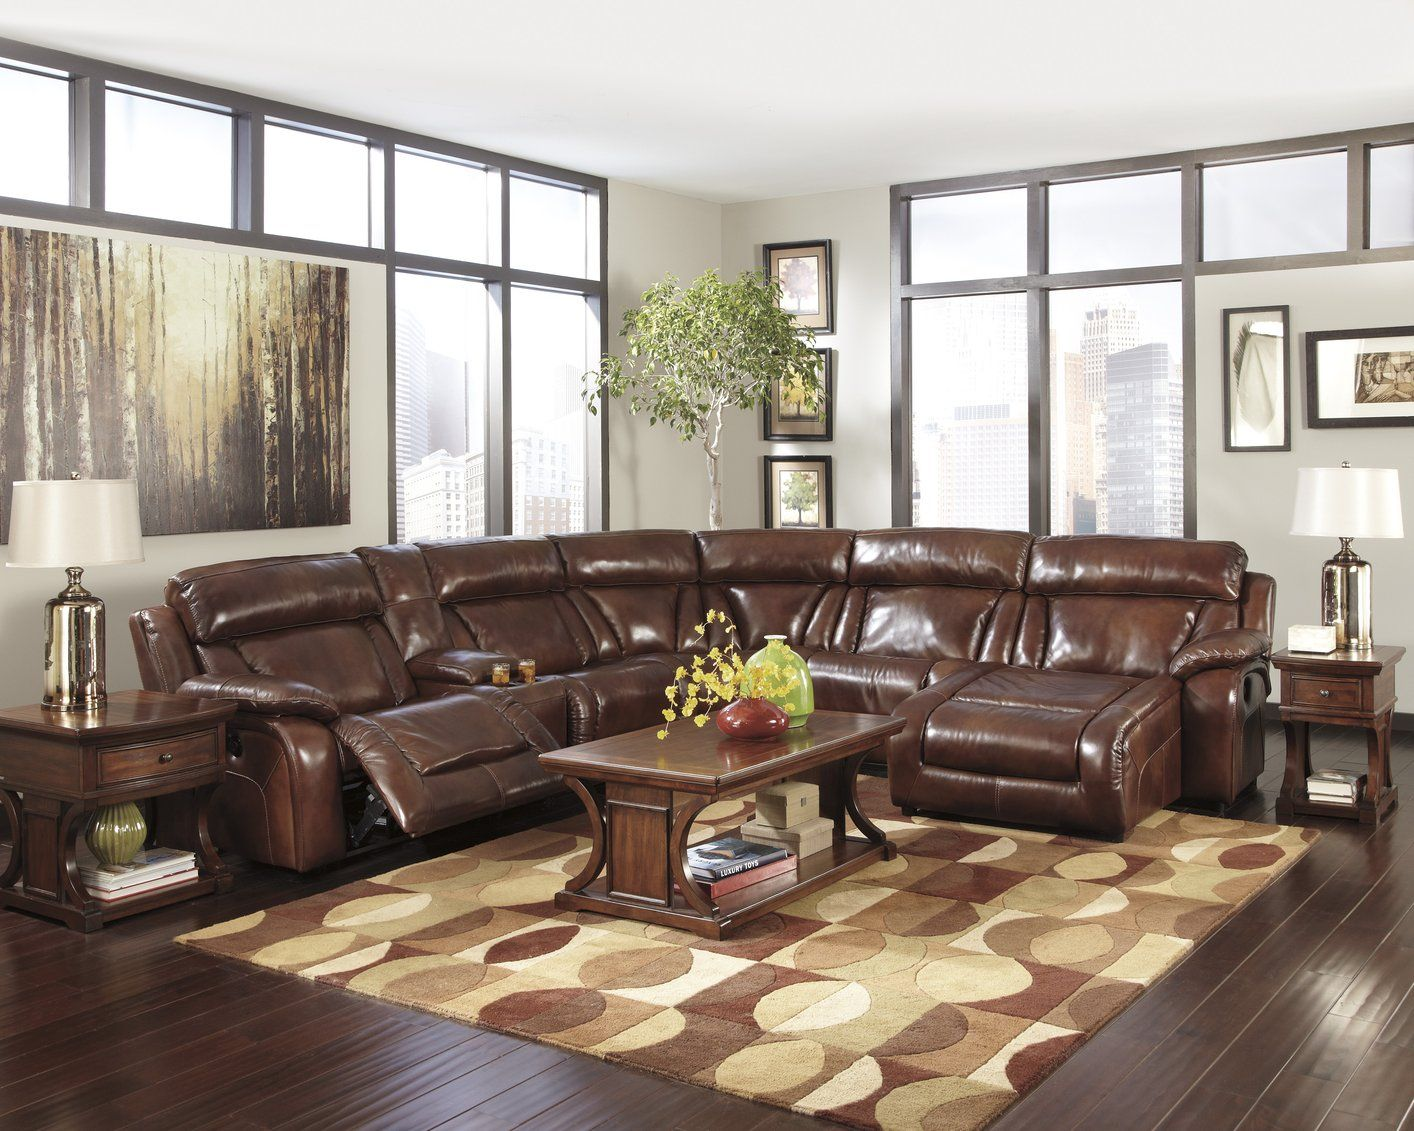 Best Leather Sectional Sofas For Small Spaces Espresso Leather 400 x 300